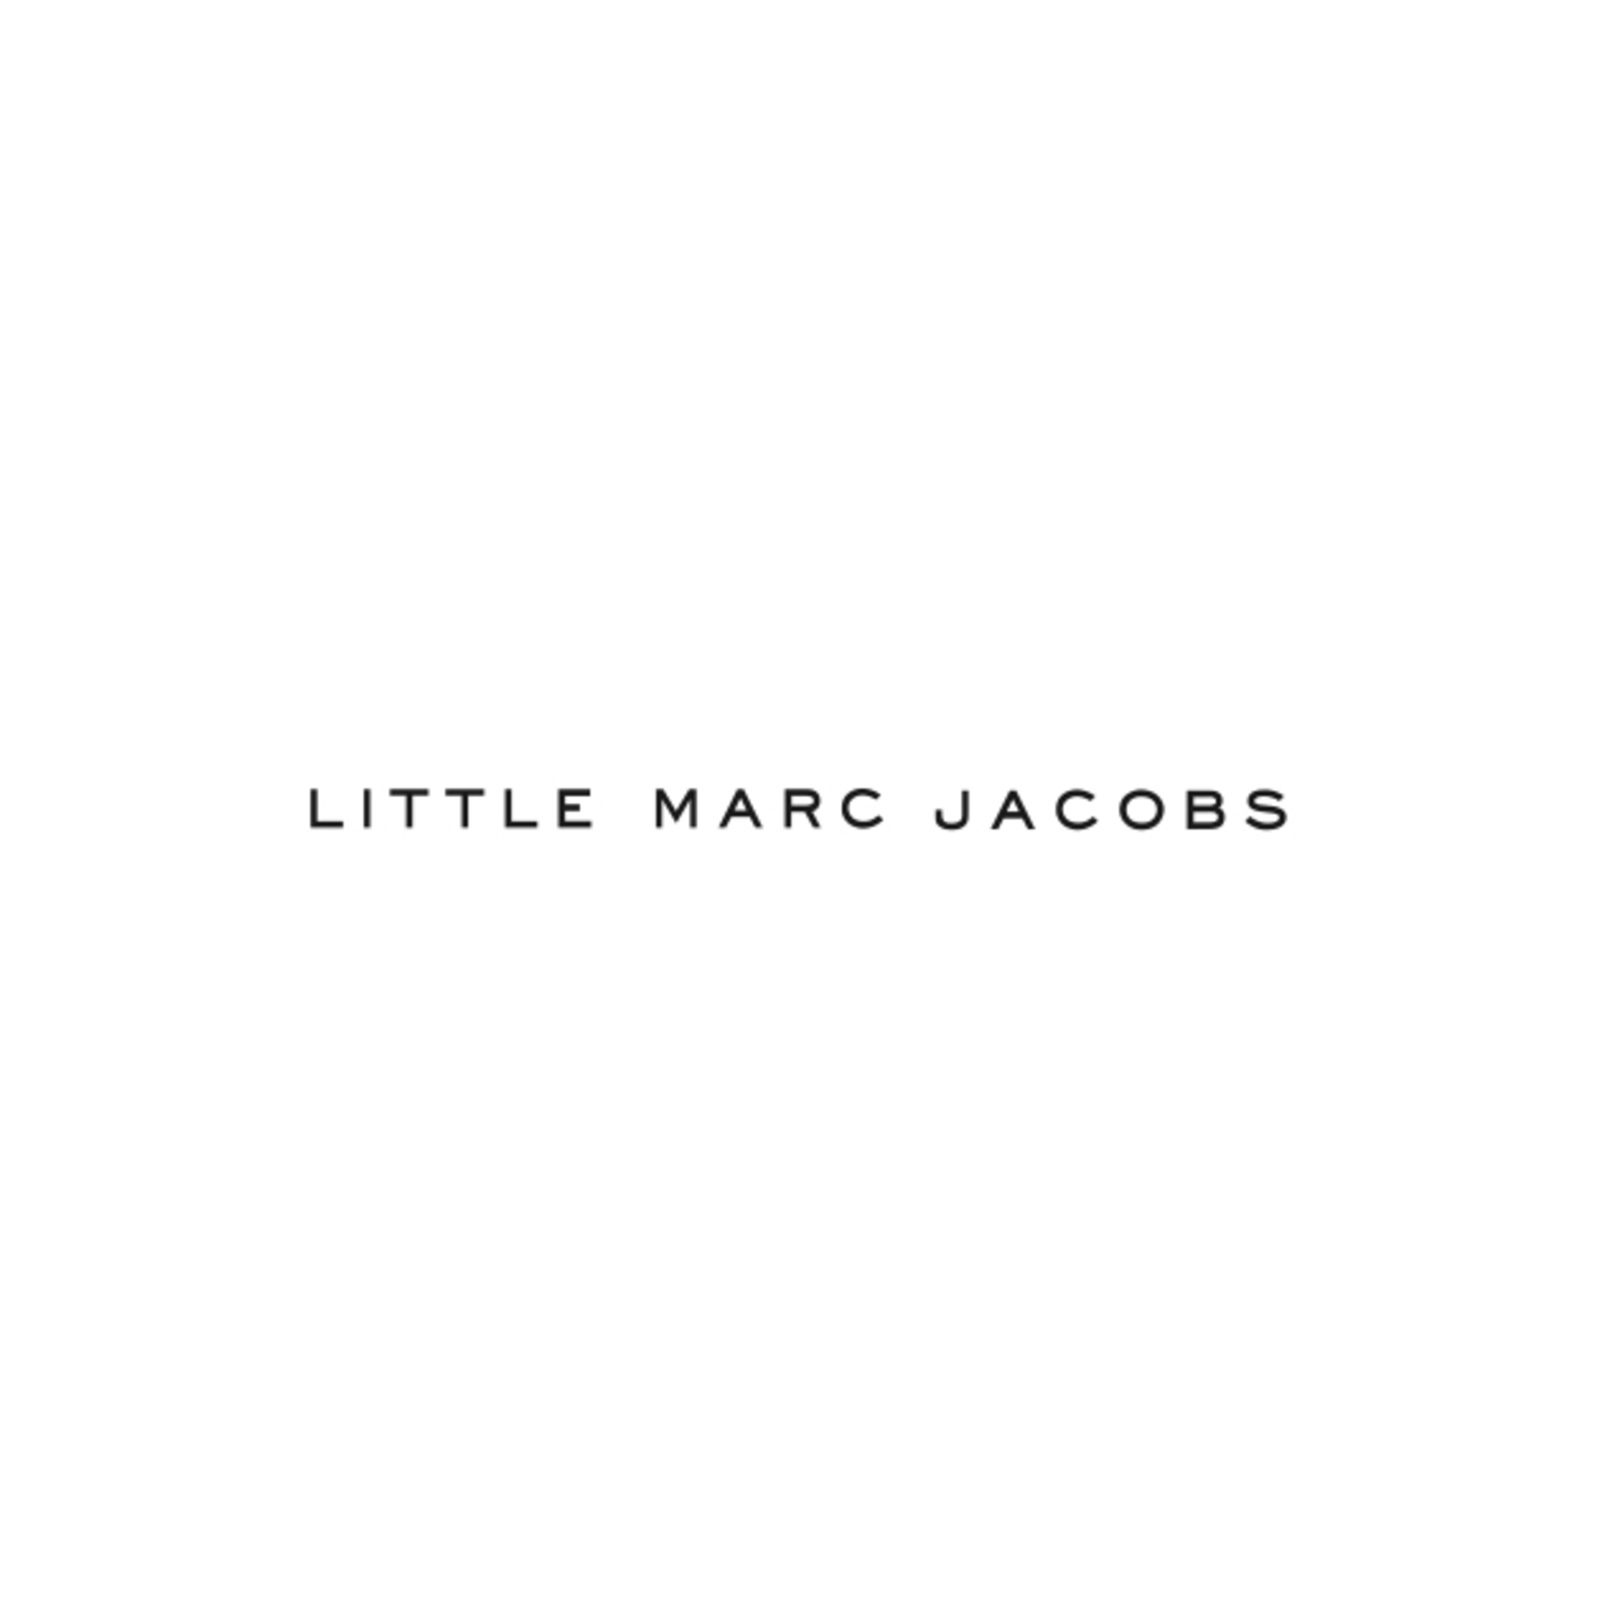 LITTLE MARC JACOBS (Image 1)